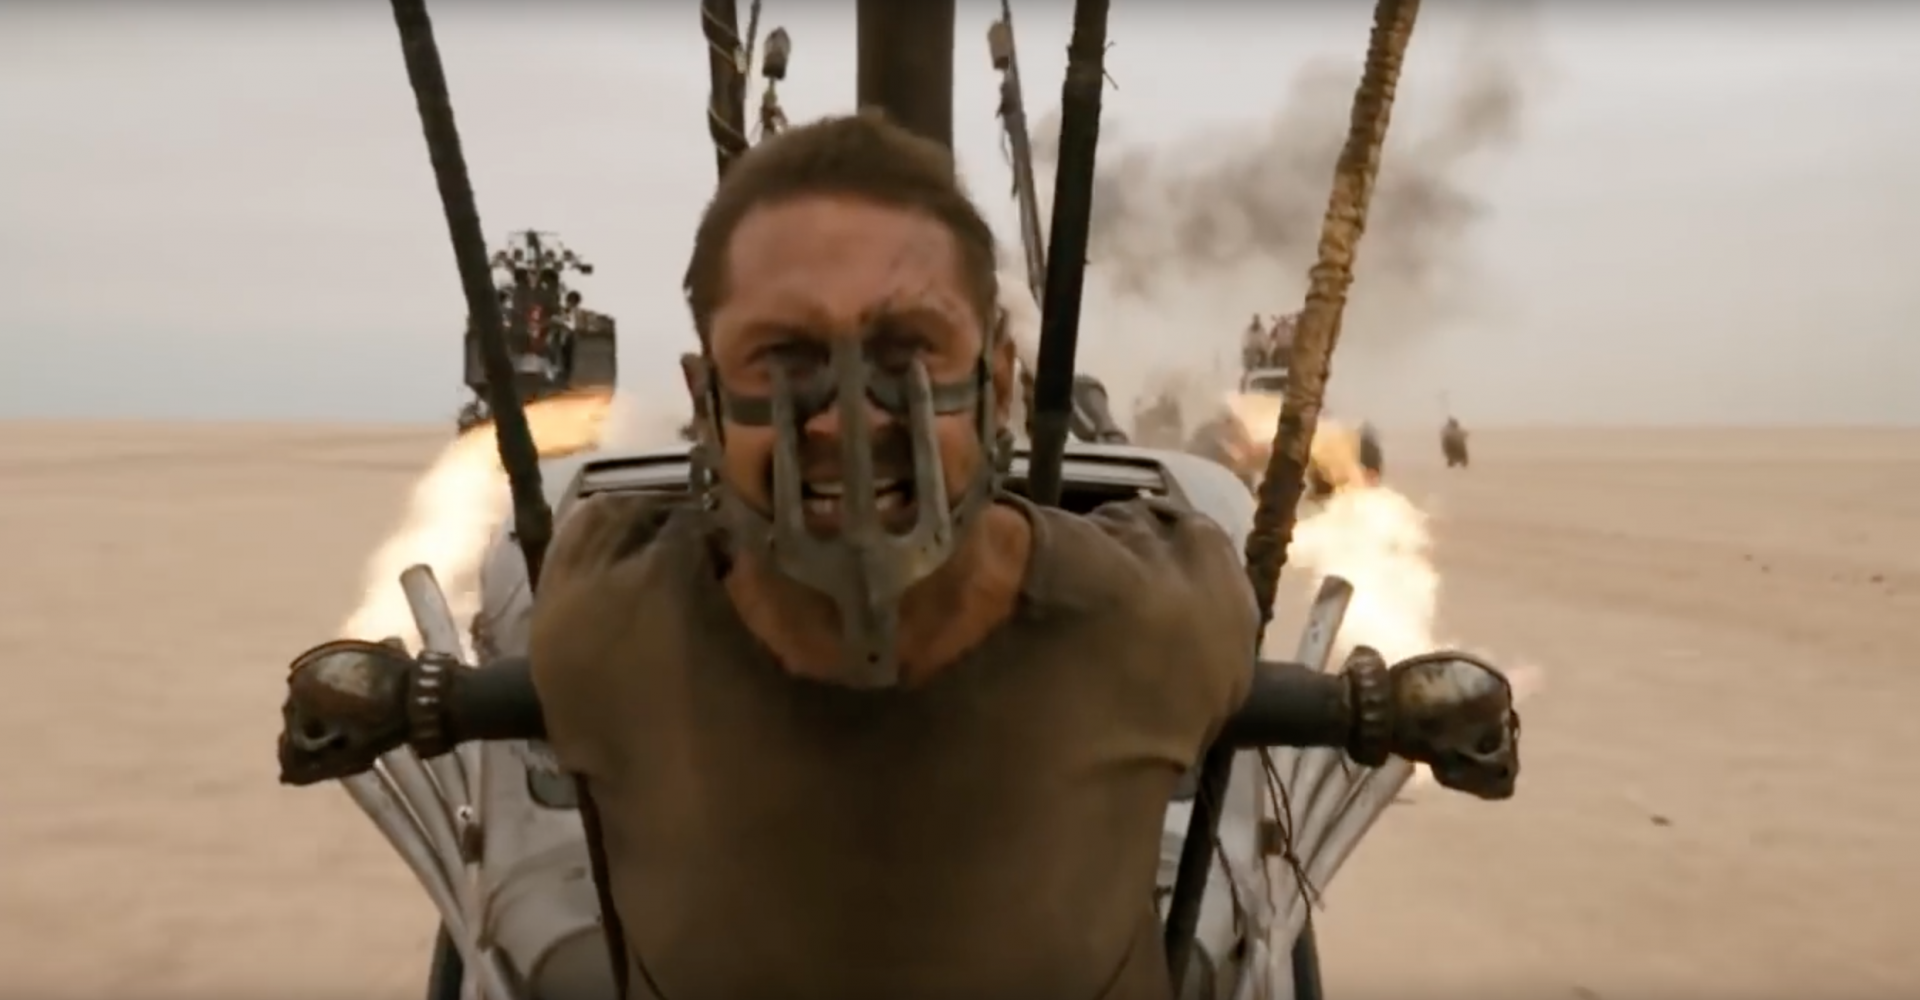 Many Of The Stunts In Mad Max: Fury Road Didn't Use CGI